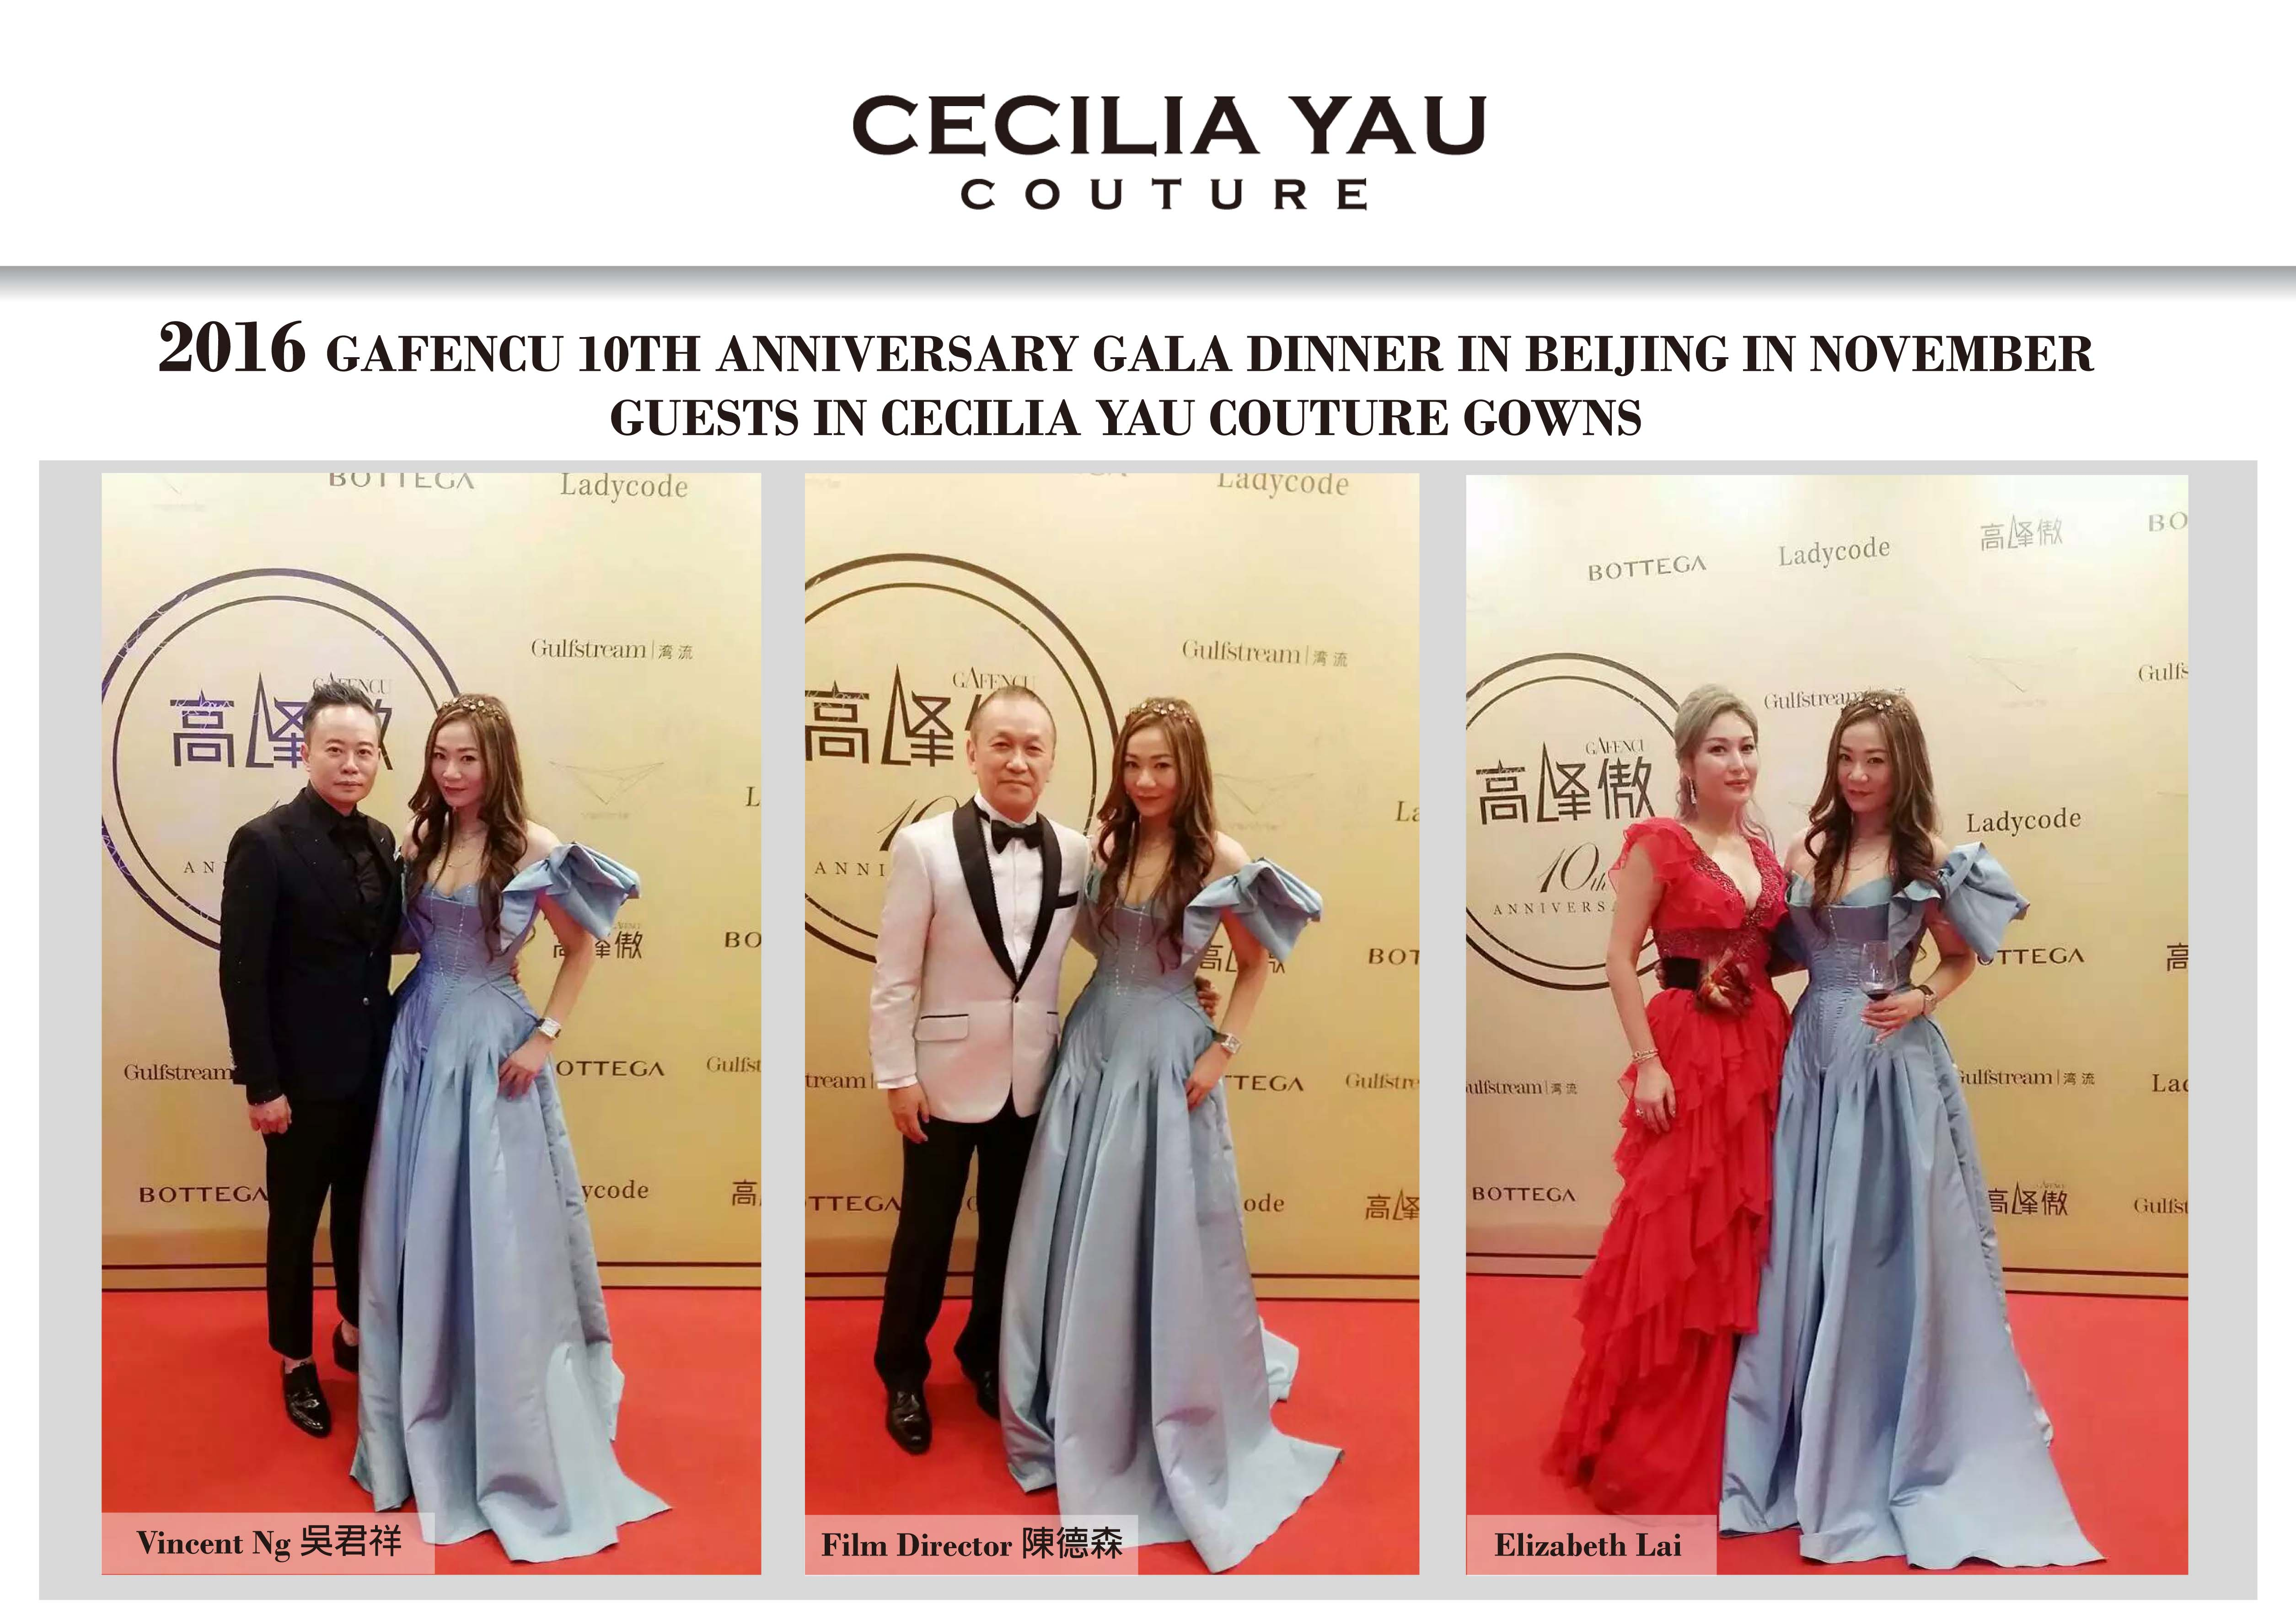 Guests in Cecilia Yau Couture Gowns